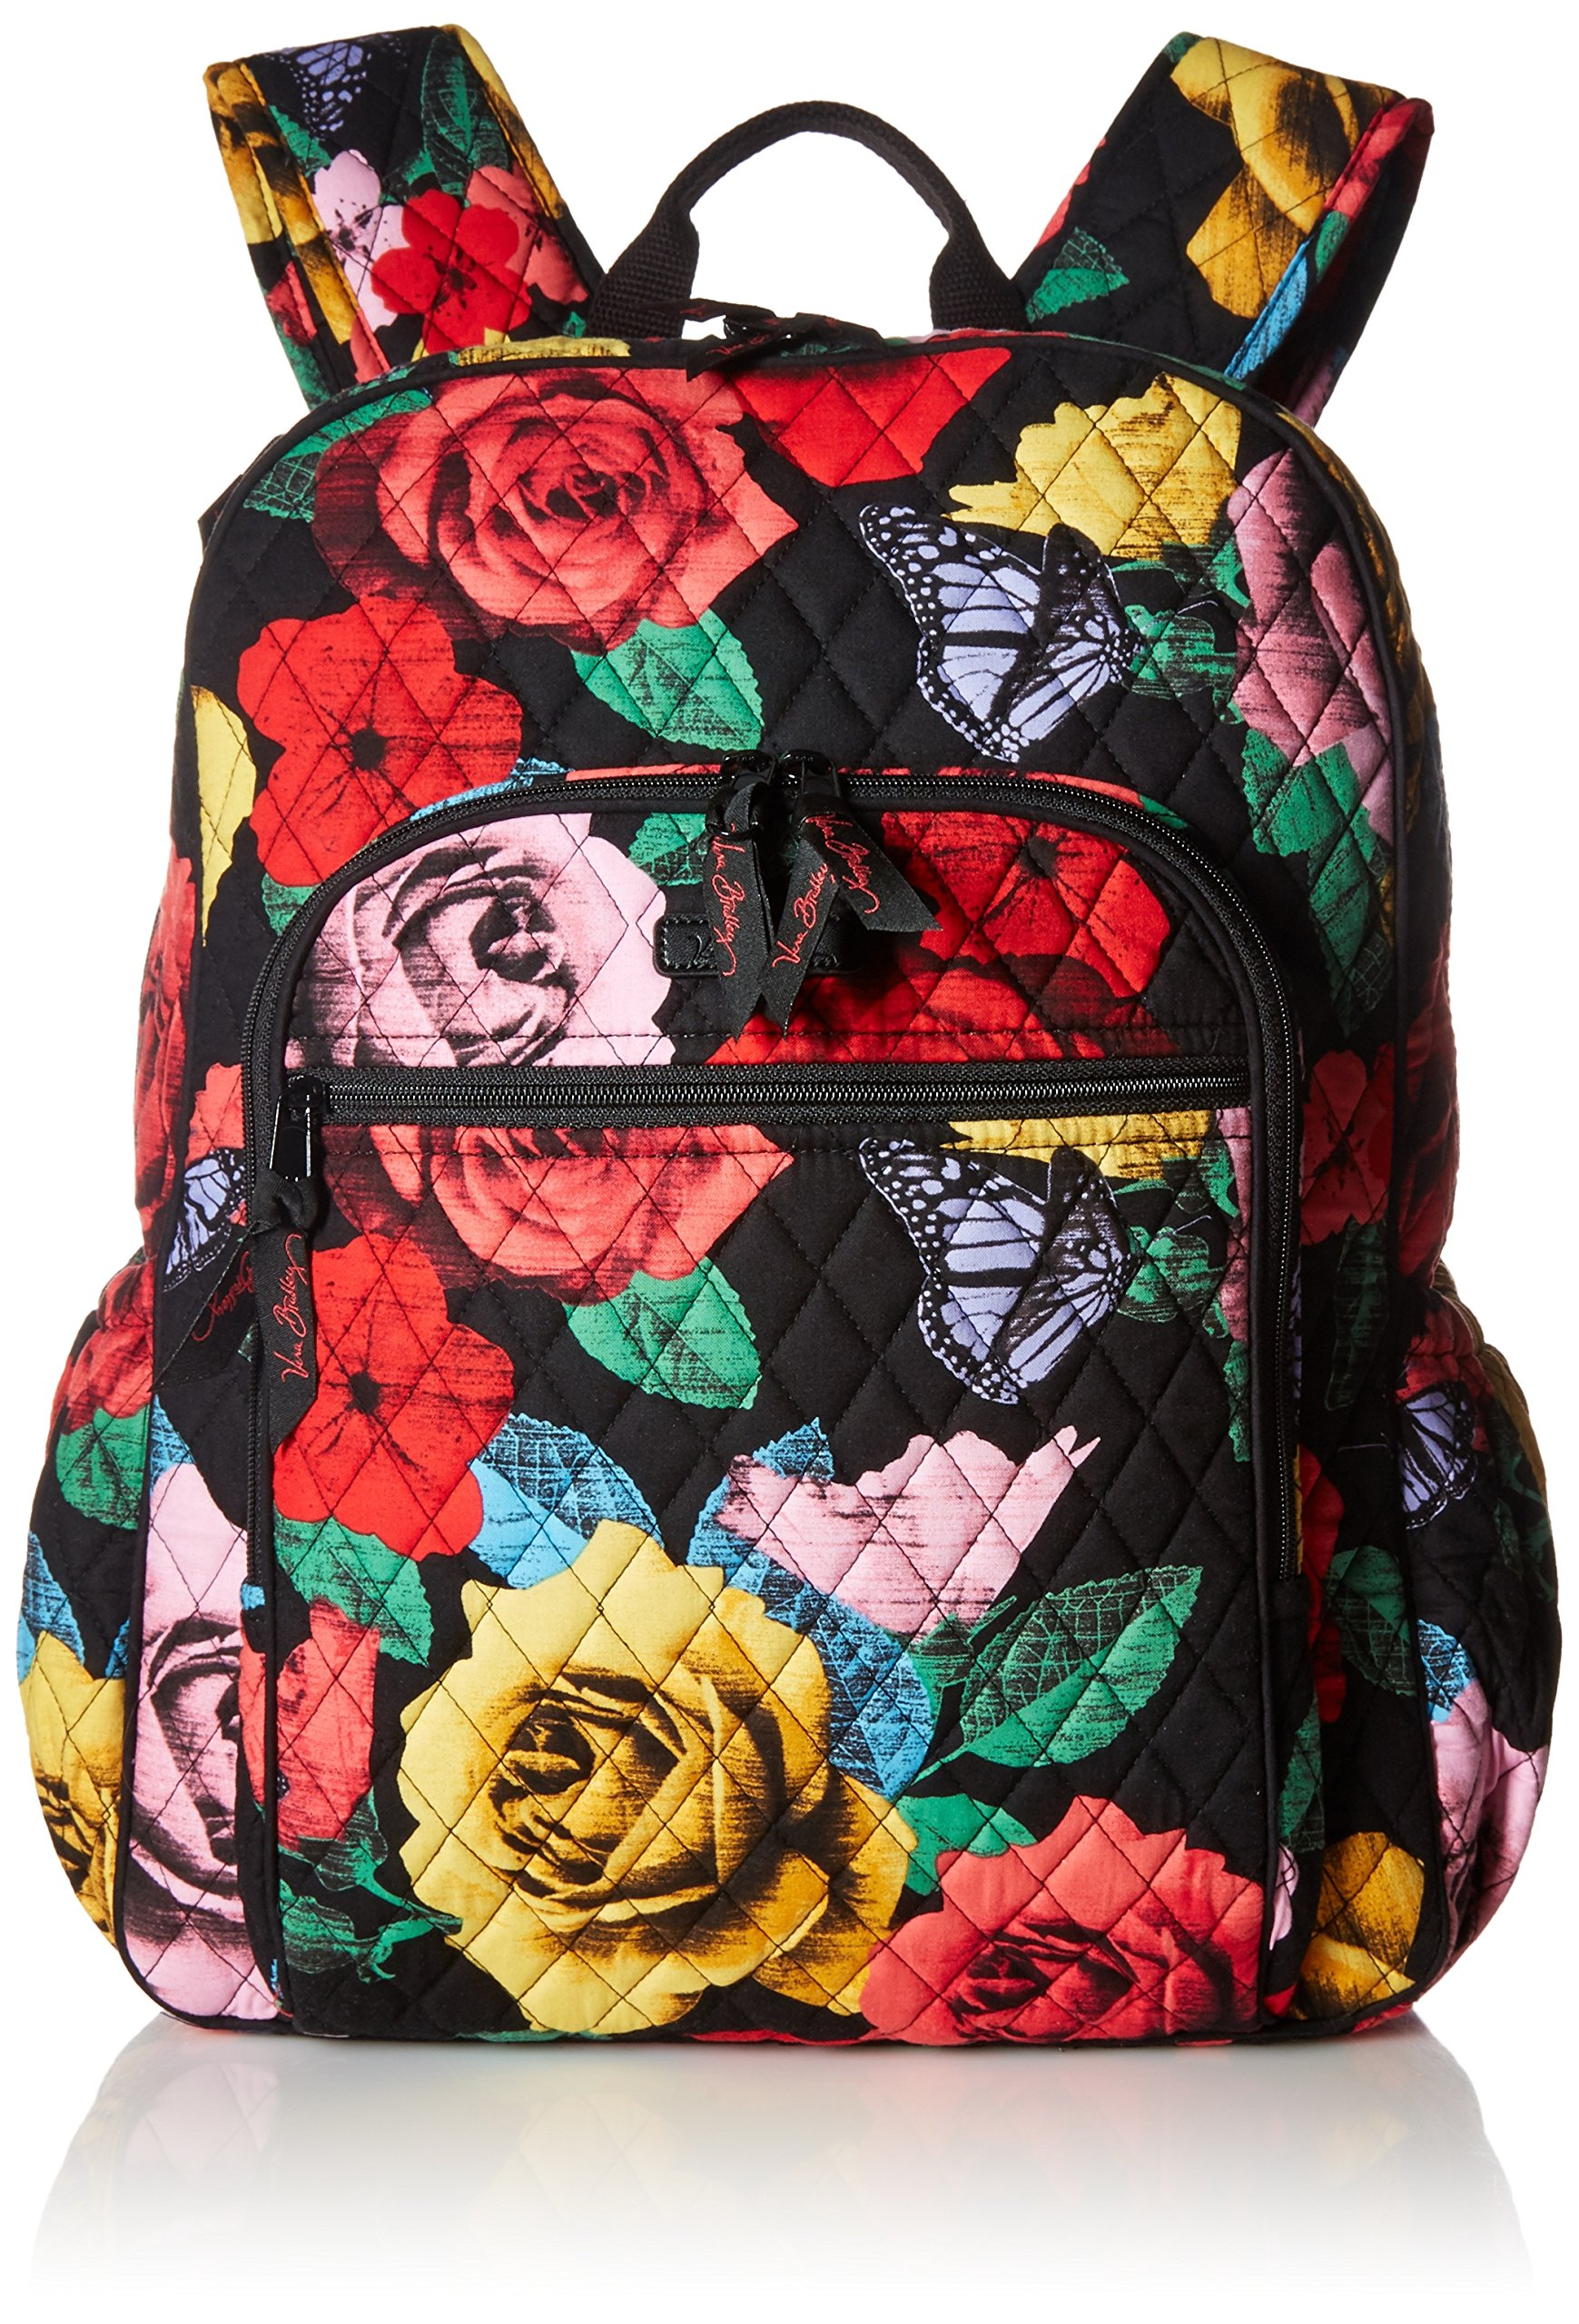 Keep Charged Campus Tech Backpack Messenger Bag, Havana Rose, One Size